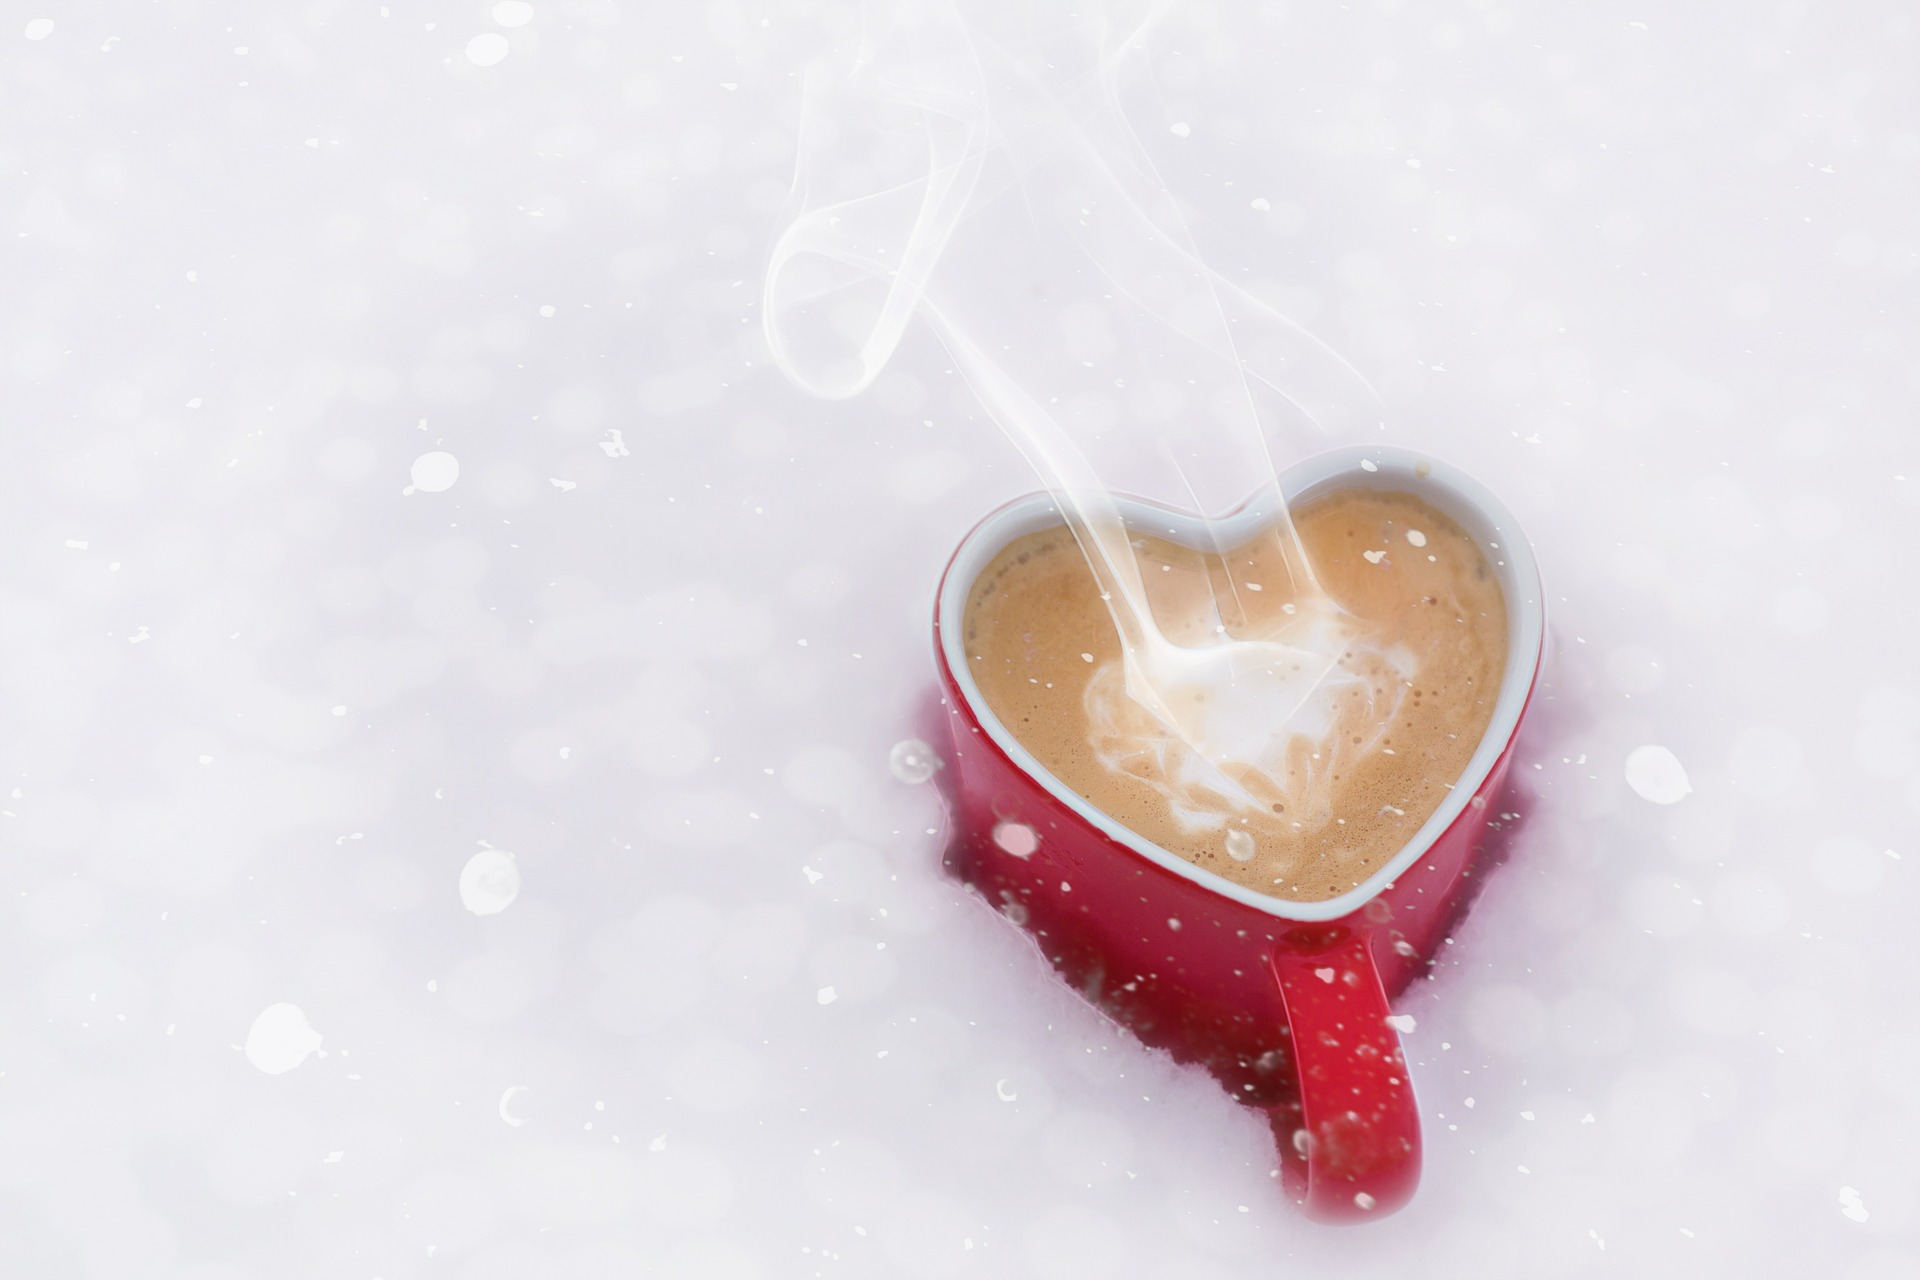 A cup of coffee in the snow